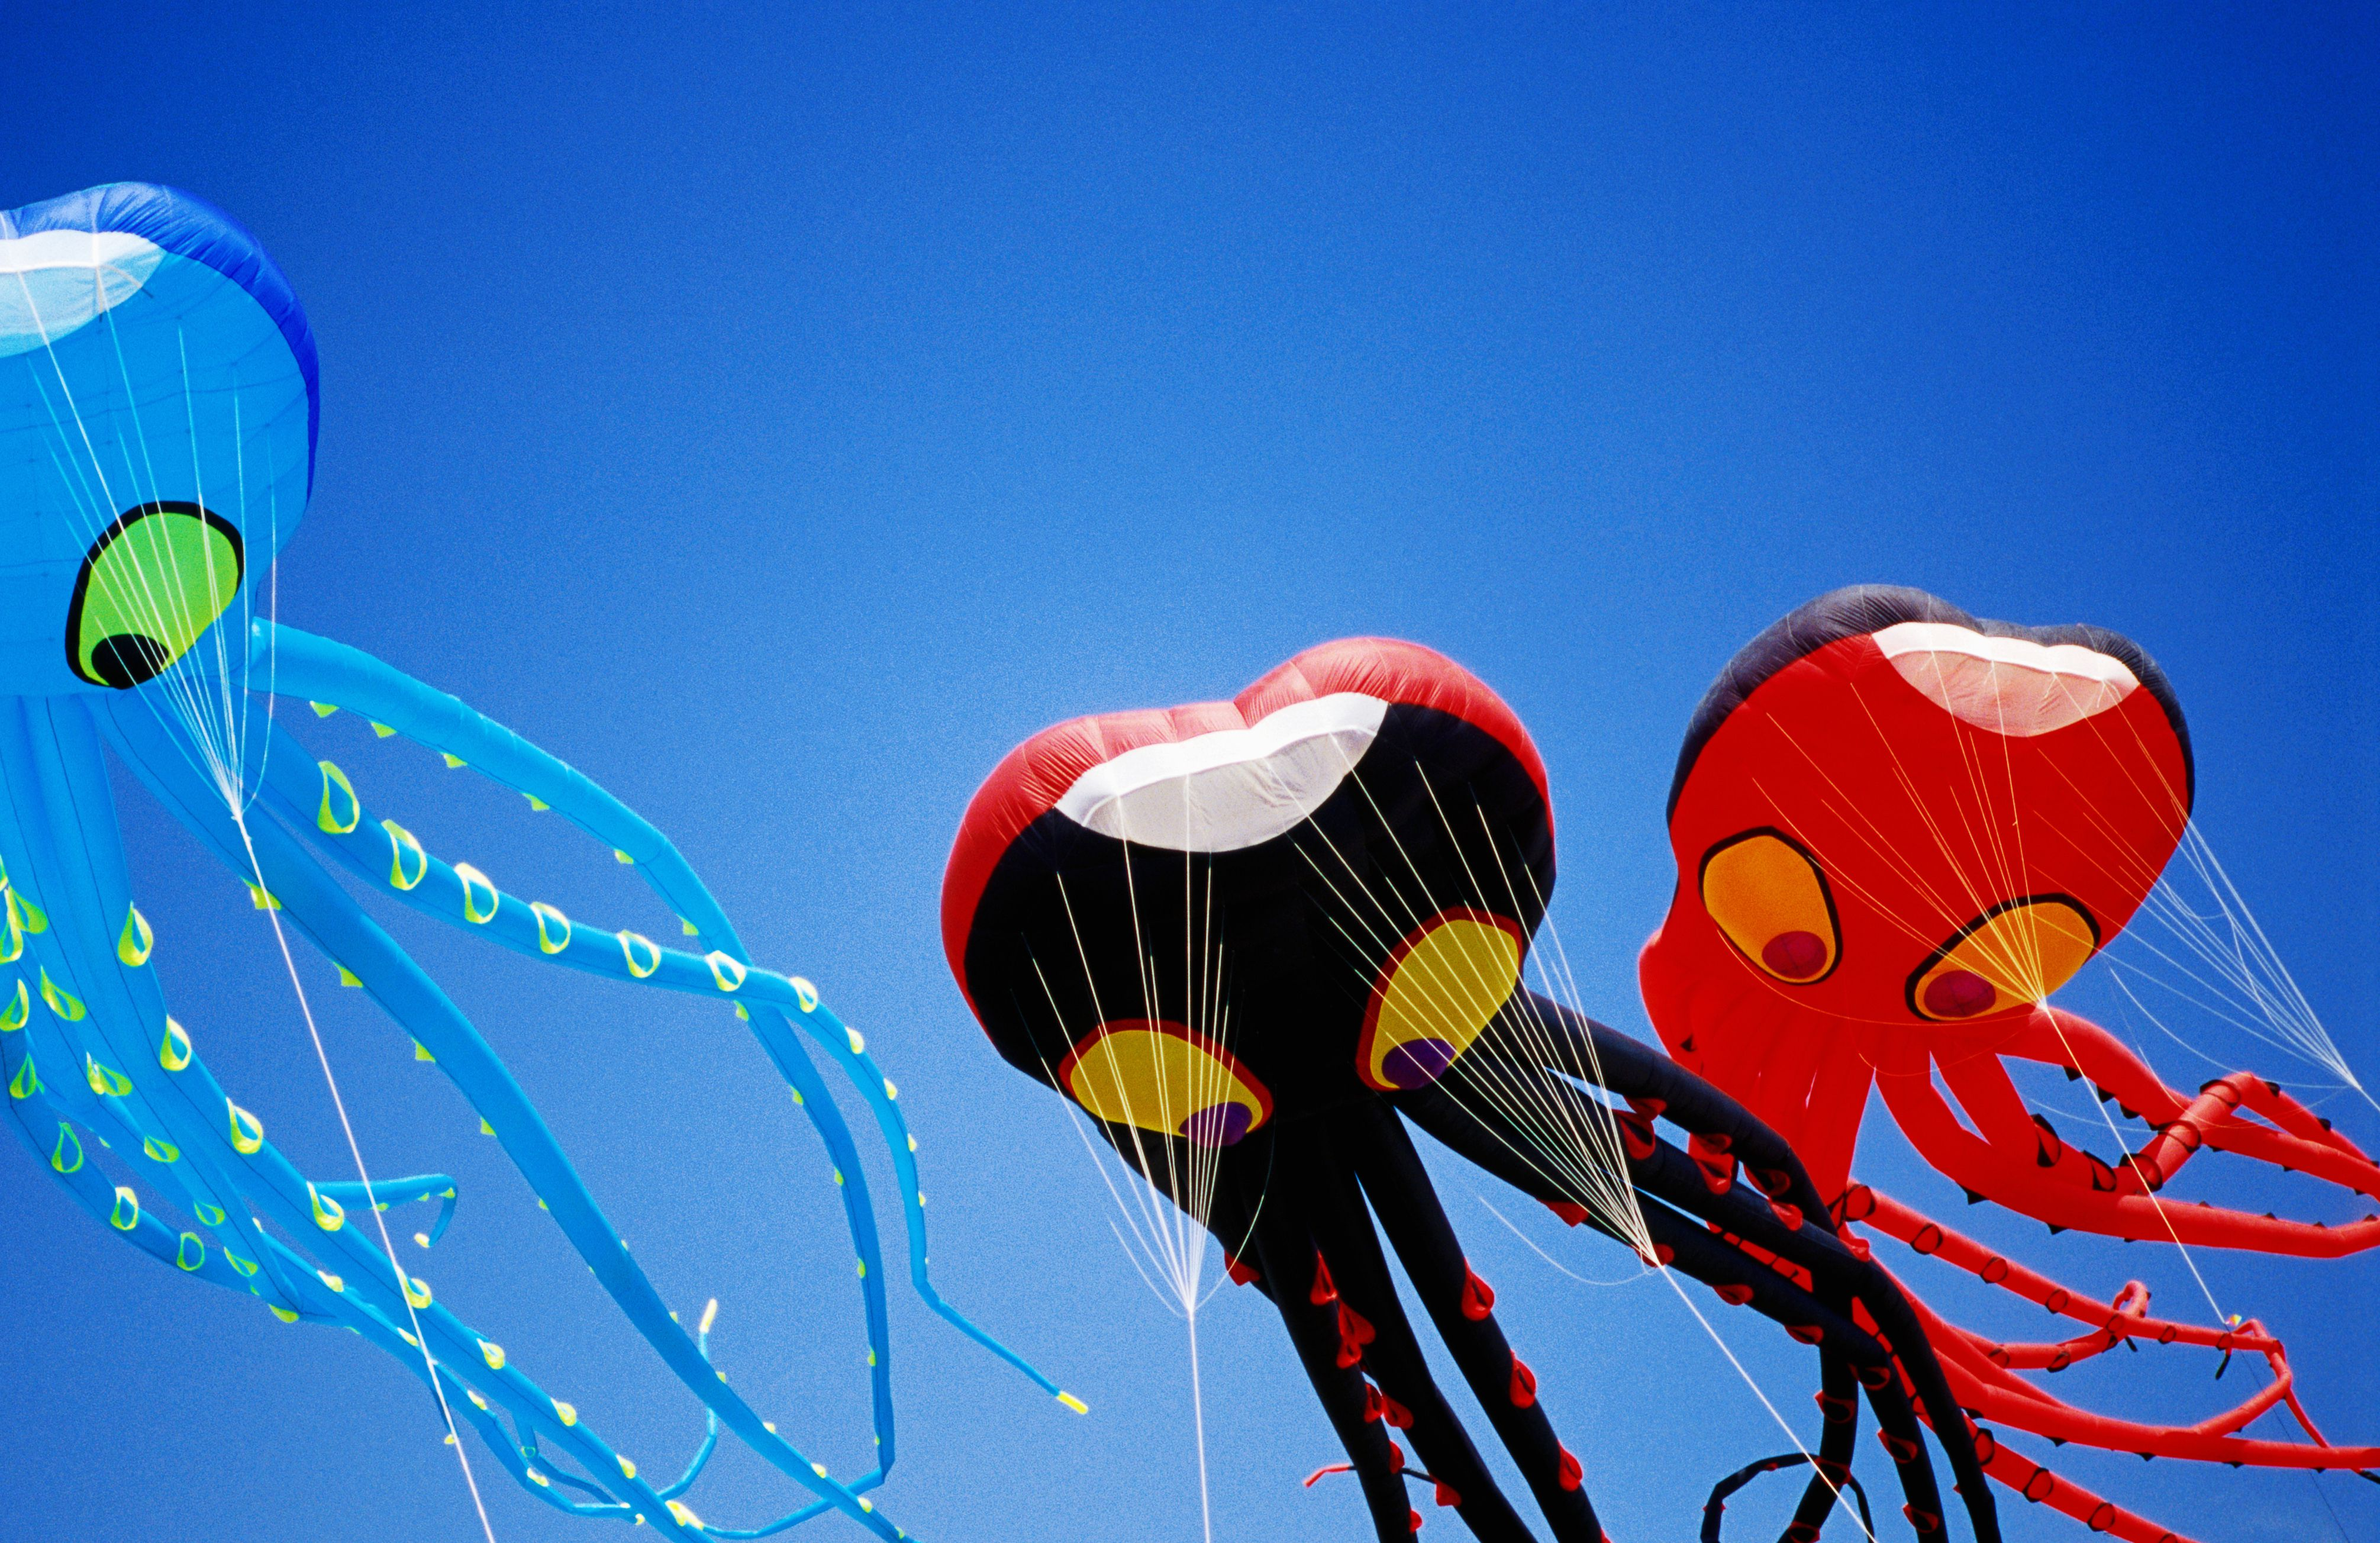 Fun Stories About Flying Kites